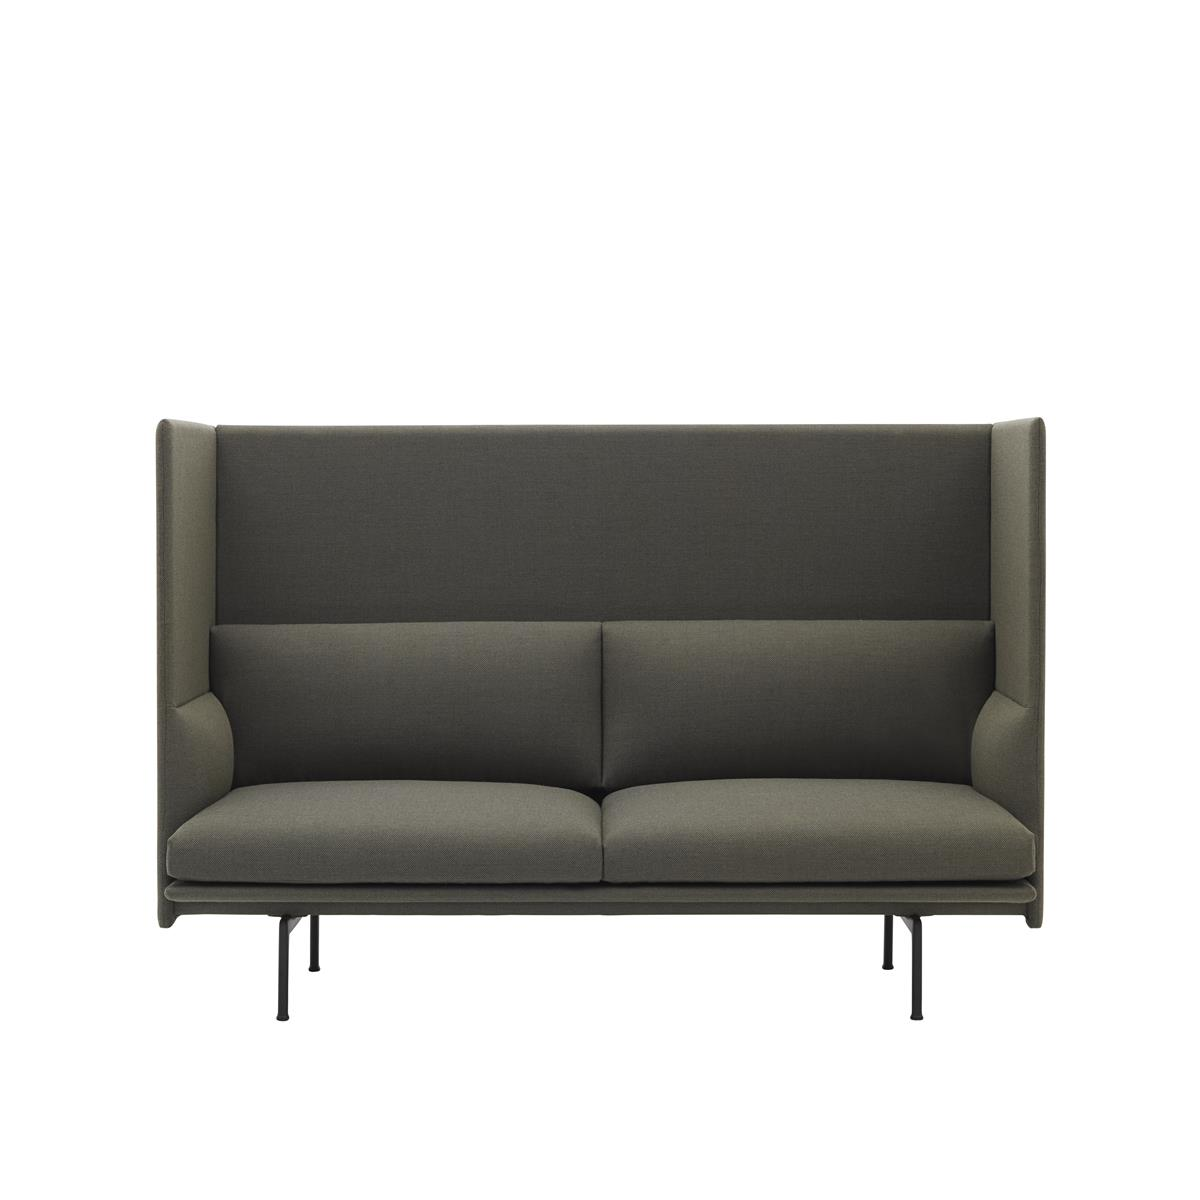 Outline Highback 2 Seater - Fiord & Black